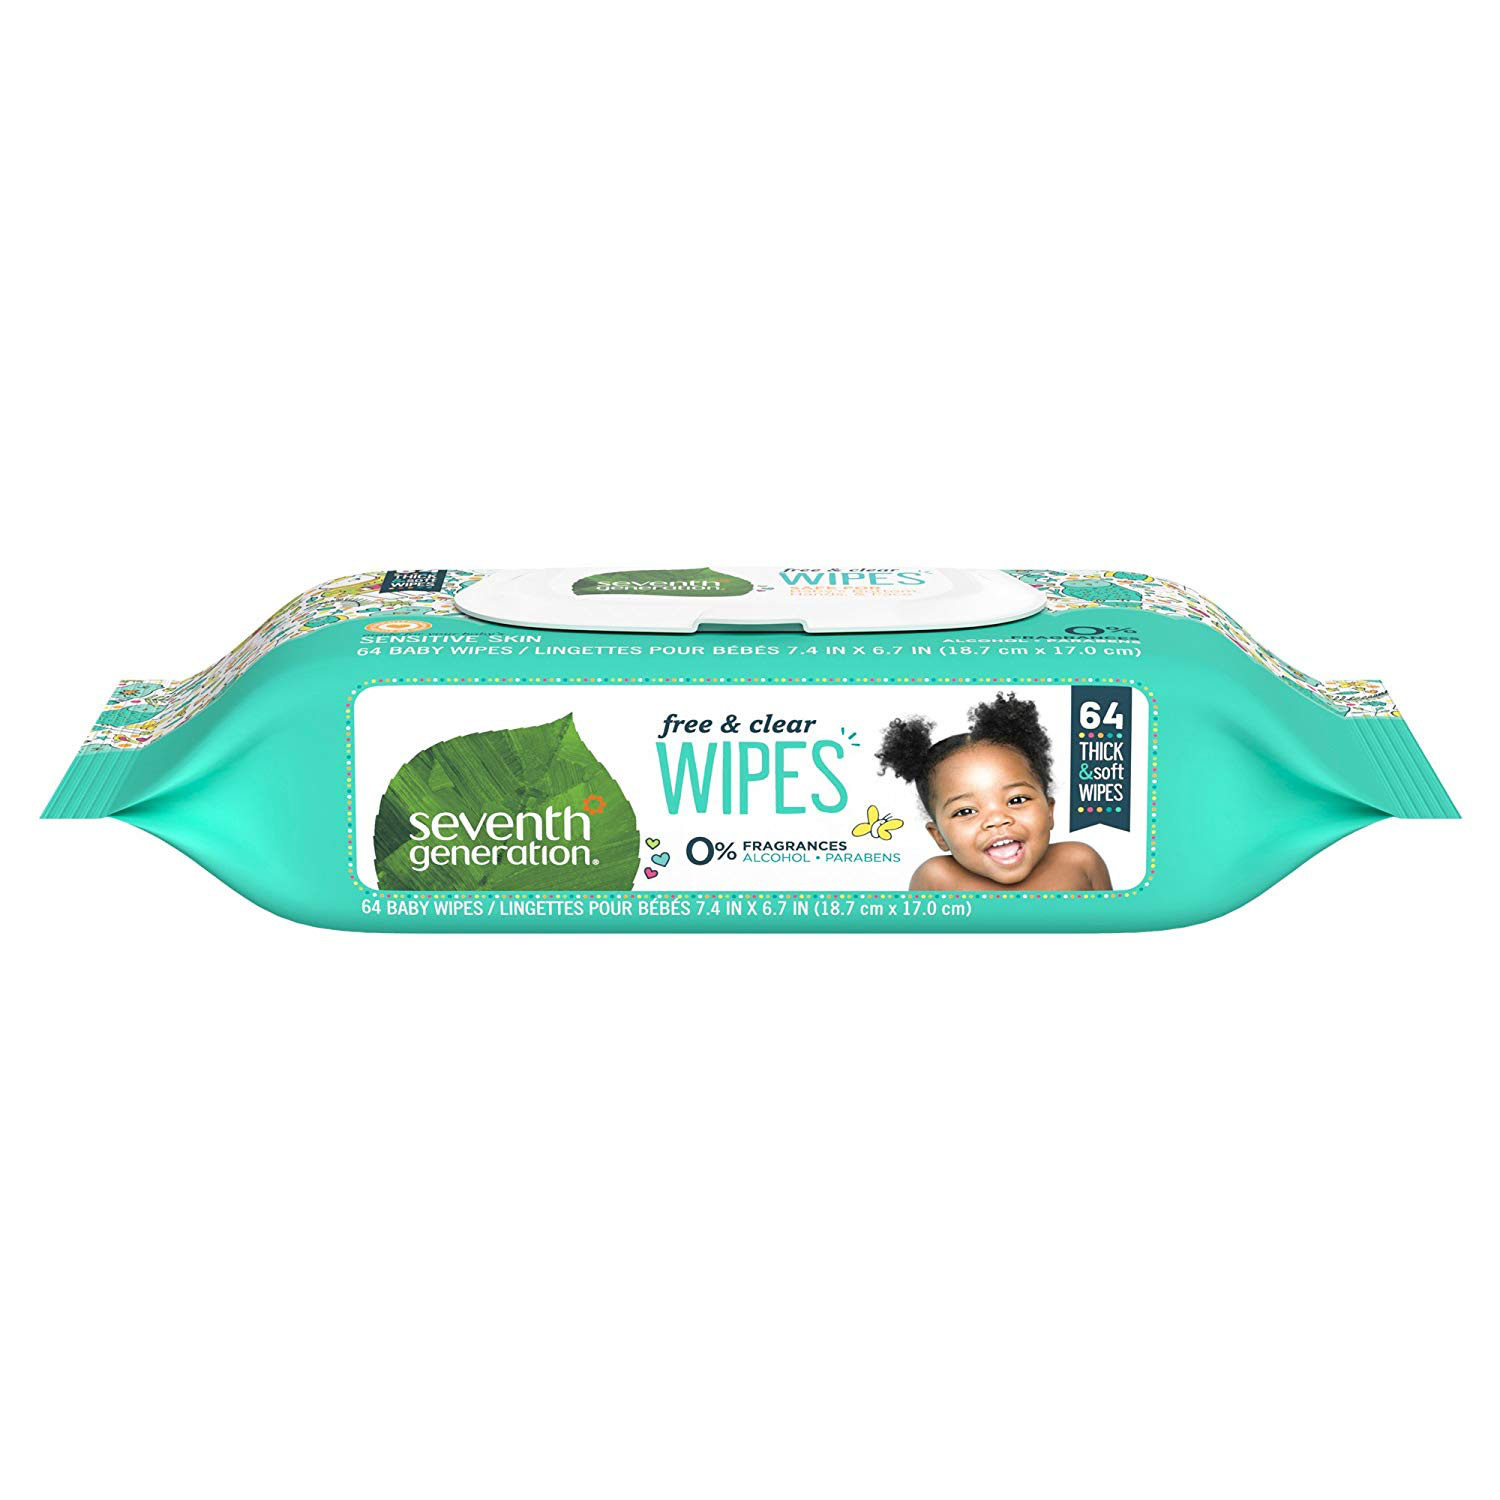 pack Of 3 Seventh Generation Baby Free & Clear Wipes 64 Ct